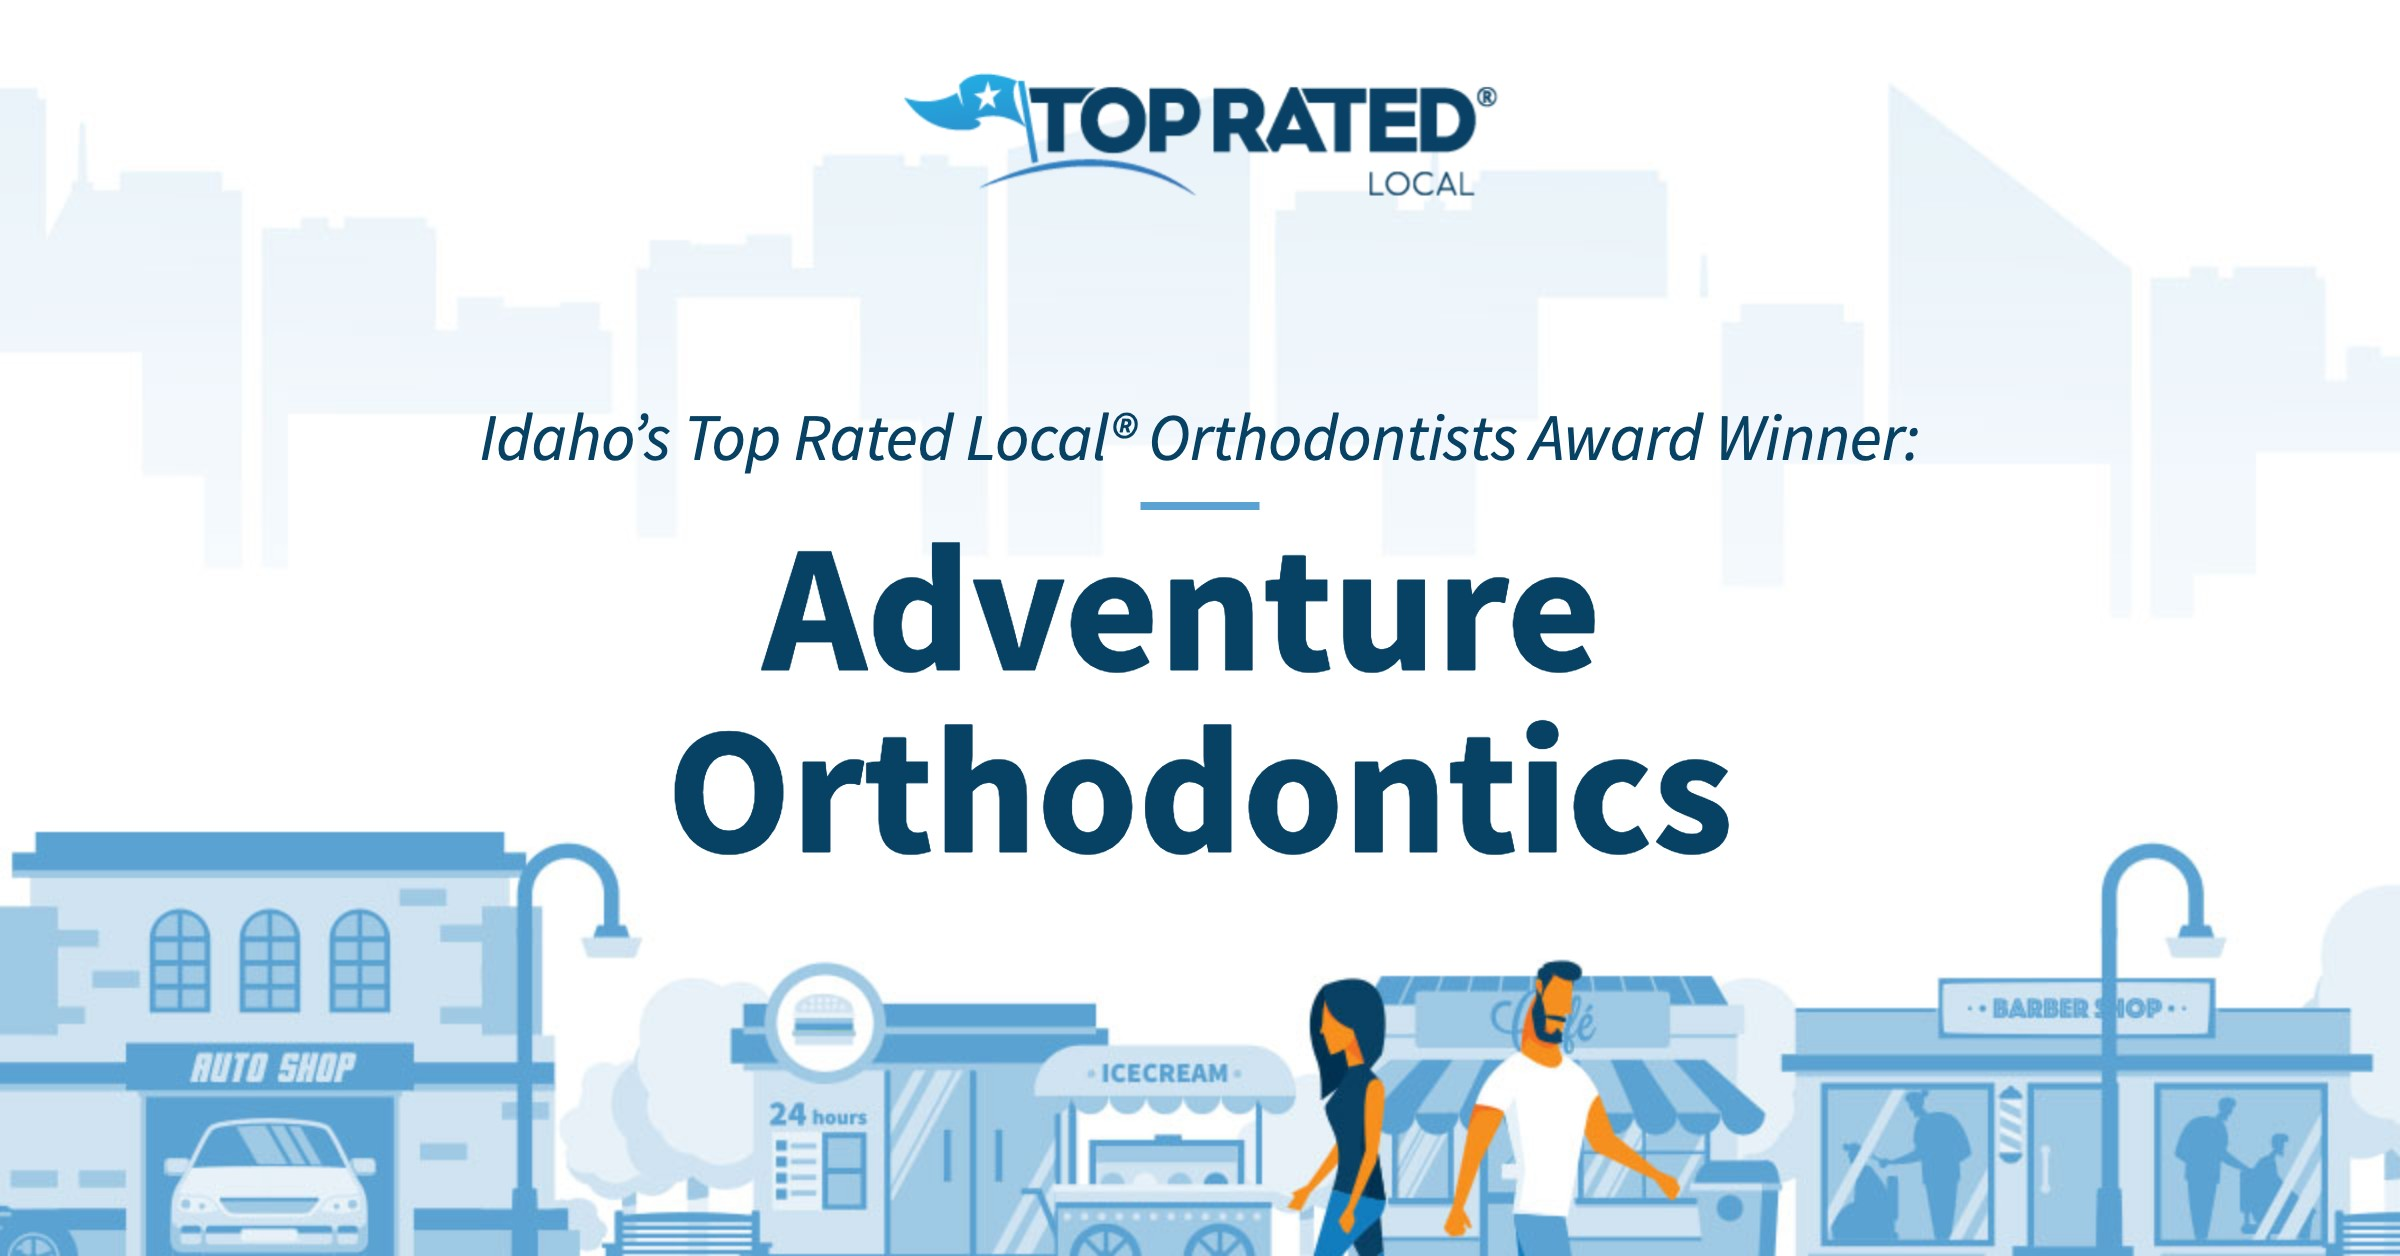 Idaho's Top Rated Local® Orthodontists Award Winner: Adventure Orthodontics